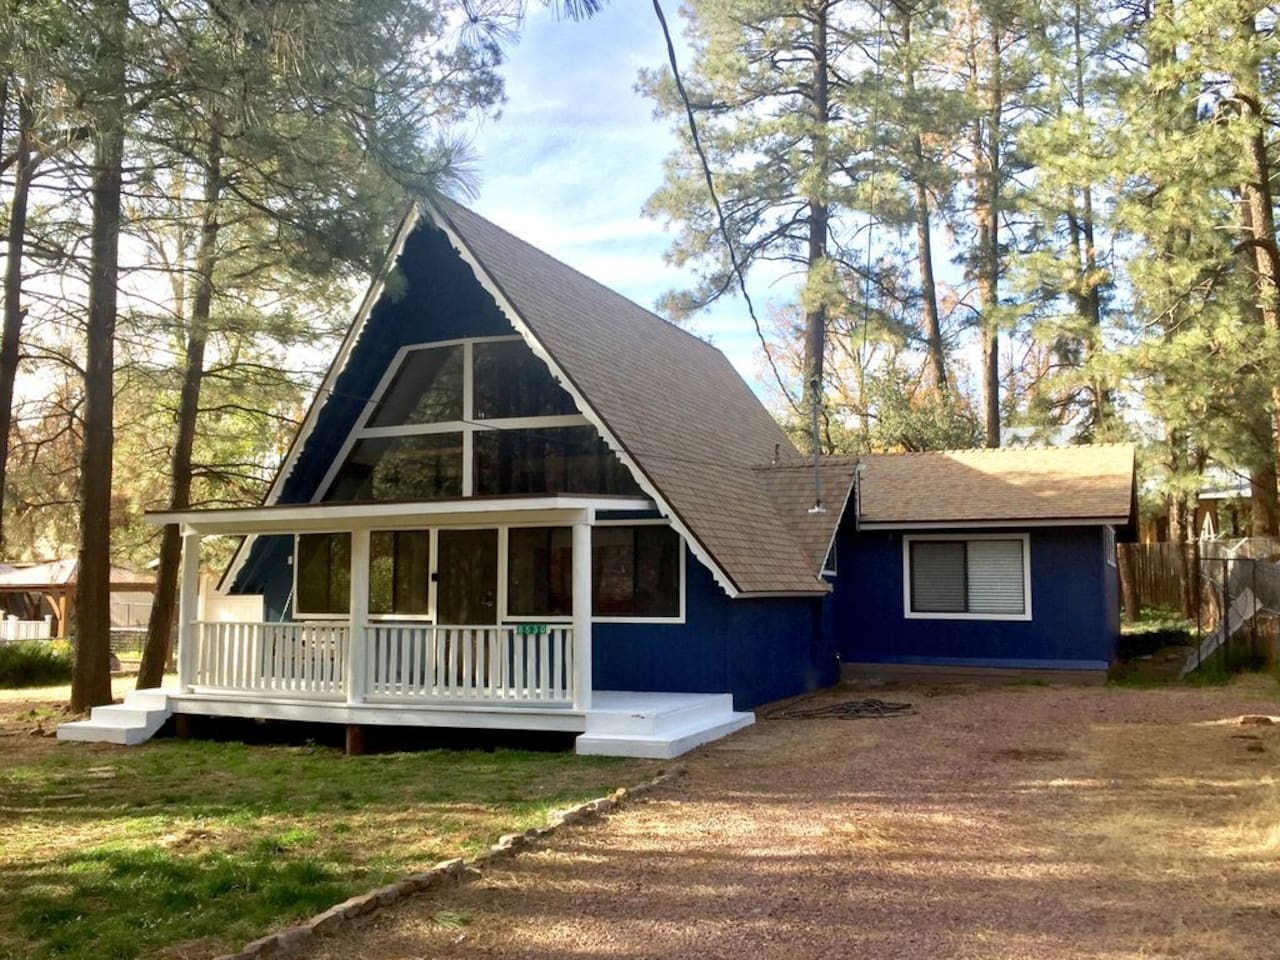 Enjoy the scenic beauty and small town charm of Strawberry, AZ when you visit this newly remodeled 2 bed + loft, 2 bath cabin in the pines.